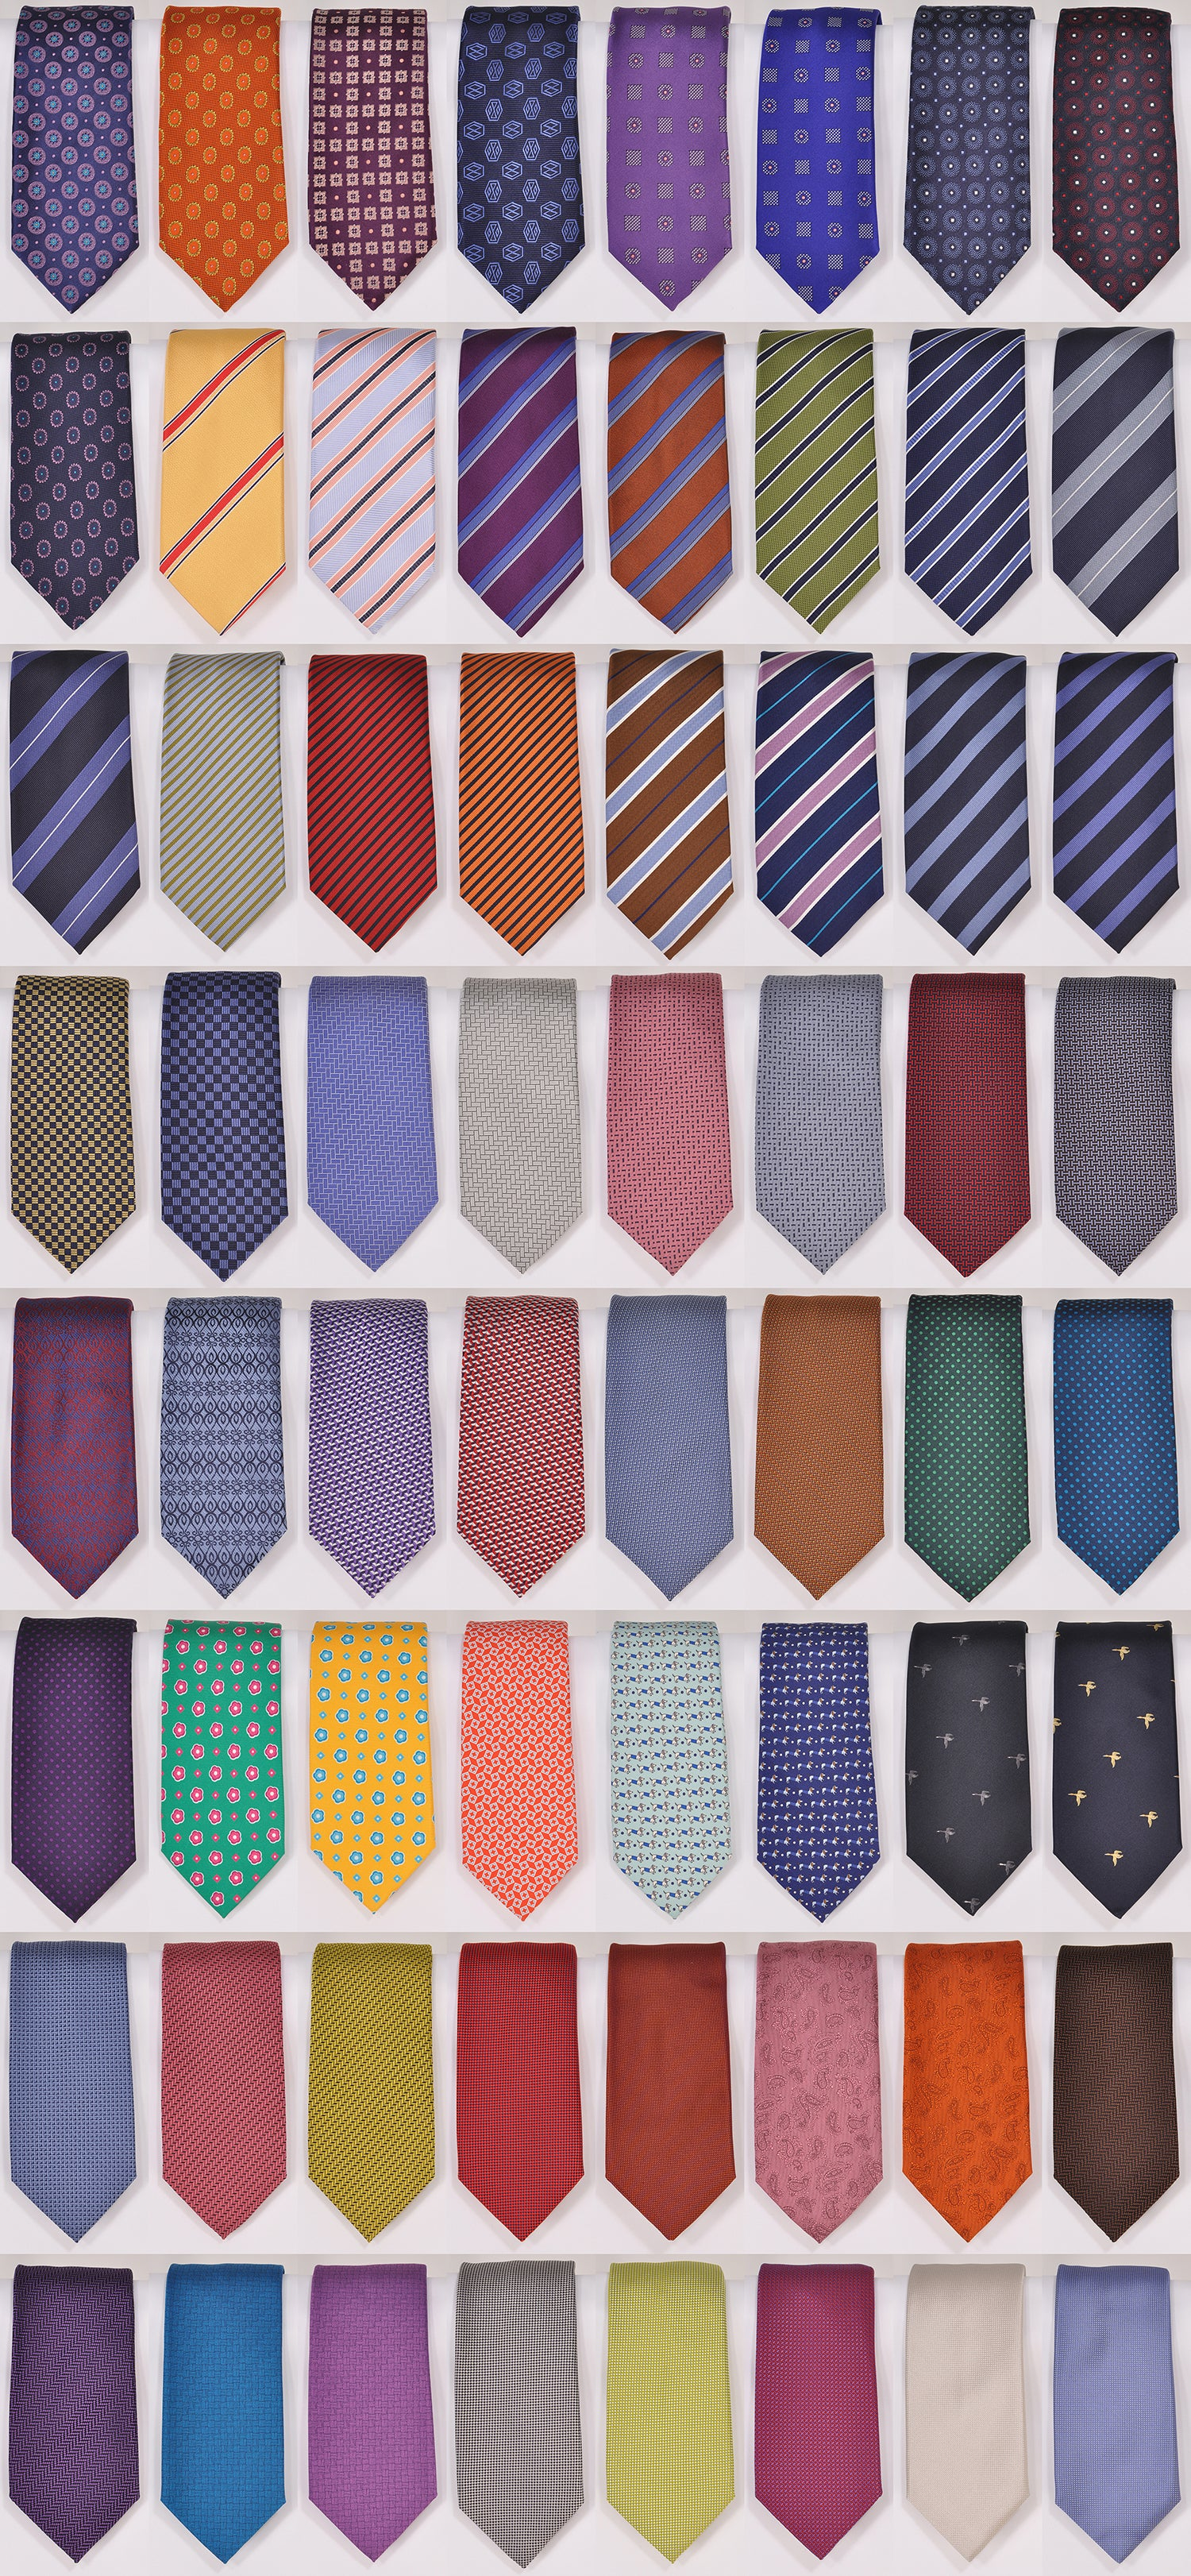 Kabbaz-Kelly Neckties